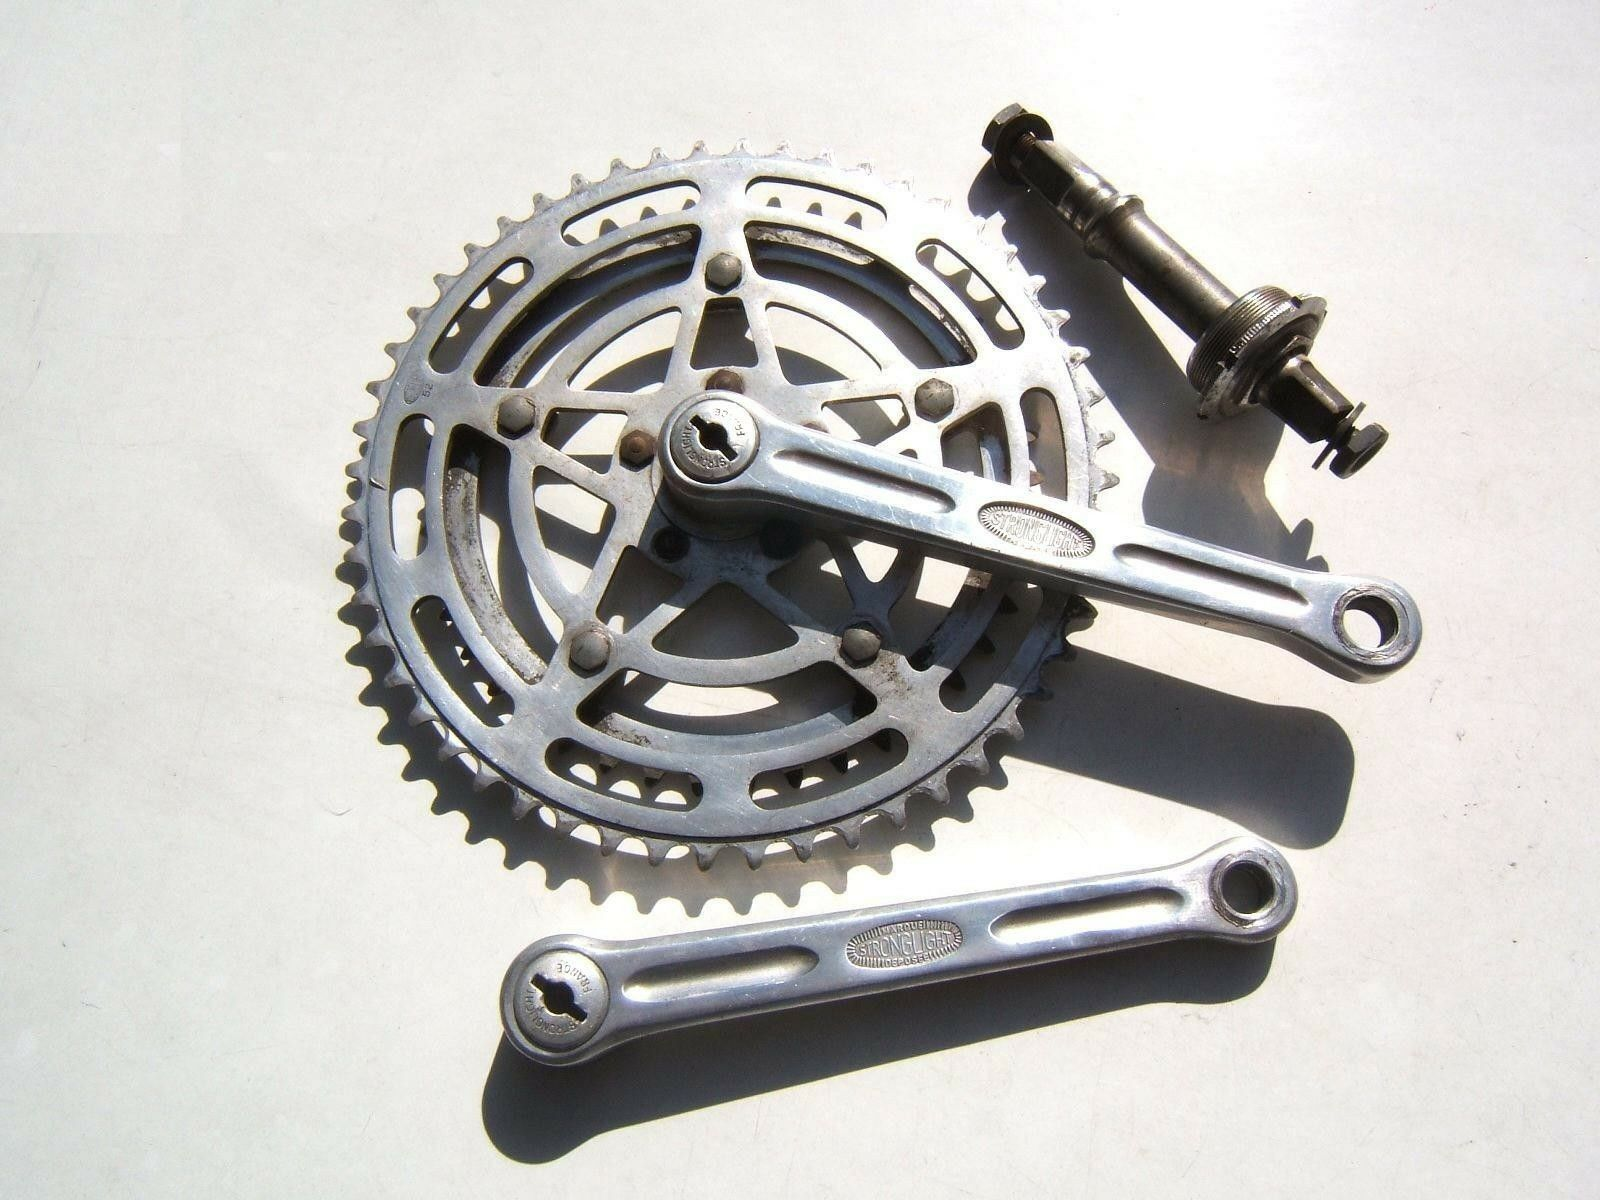 STRONGLIGHT 49D ALLOY  CRANKSET TWIN CHAINWHEEL 42 52, AXLE, 1 2 B.B. - 60's USED  100% genuine counter guarantee